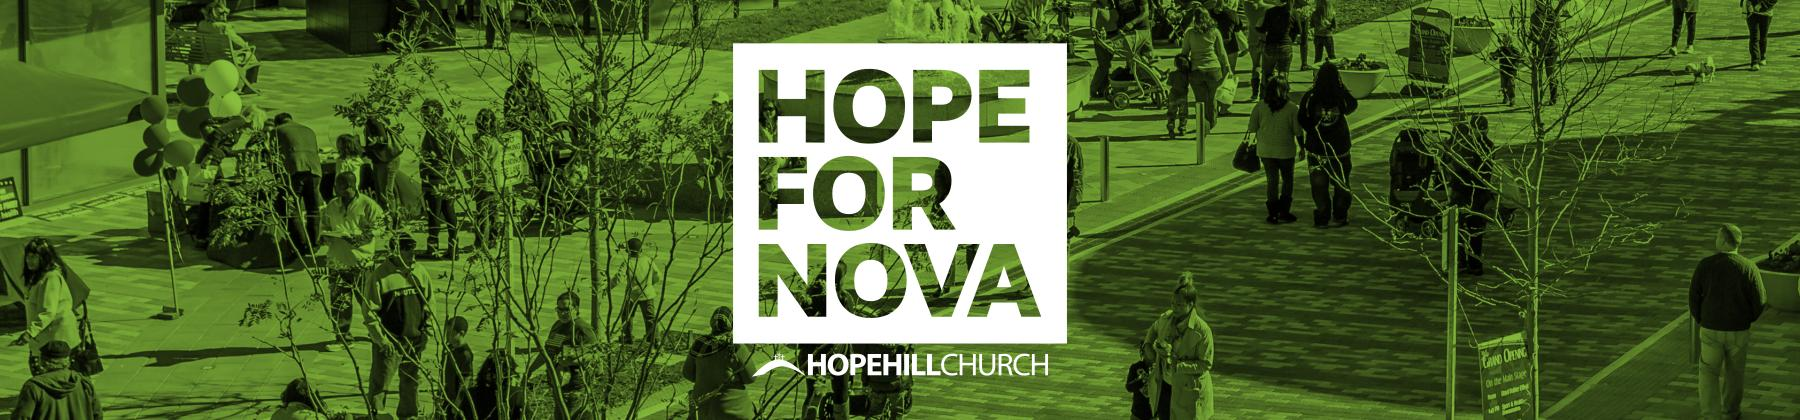 hope-for-nova-banner-wide-compressed